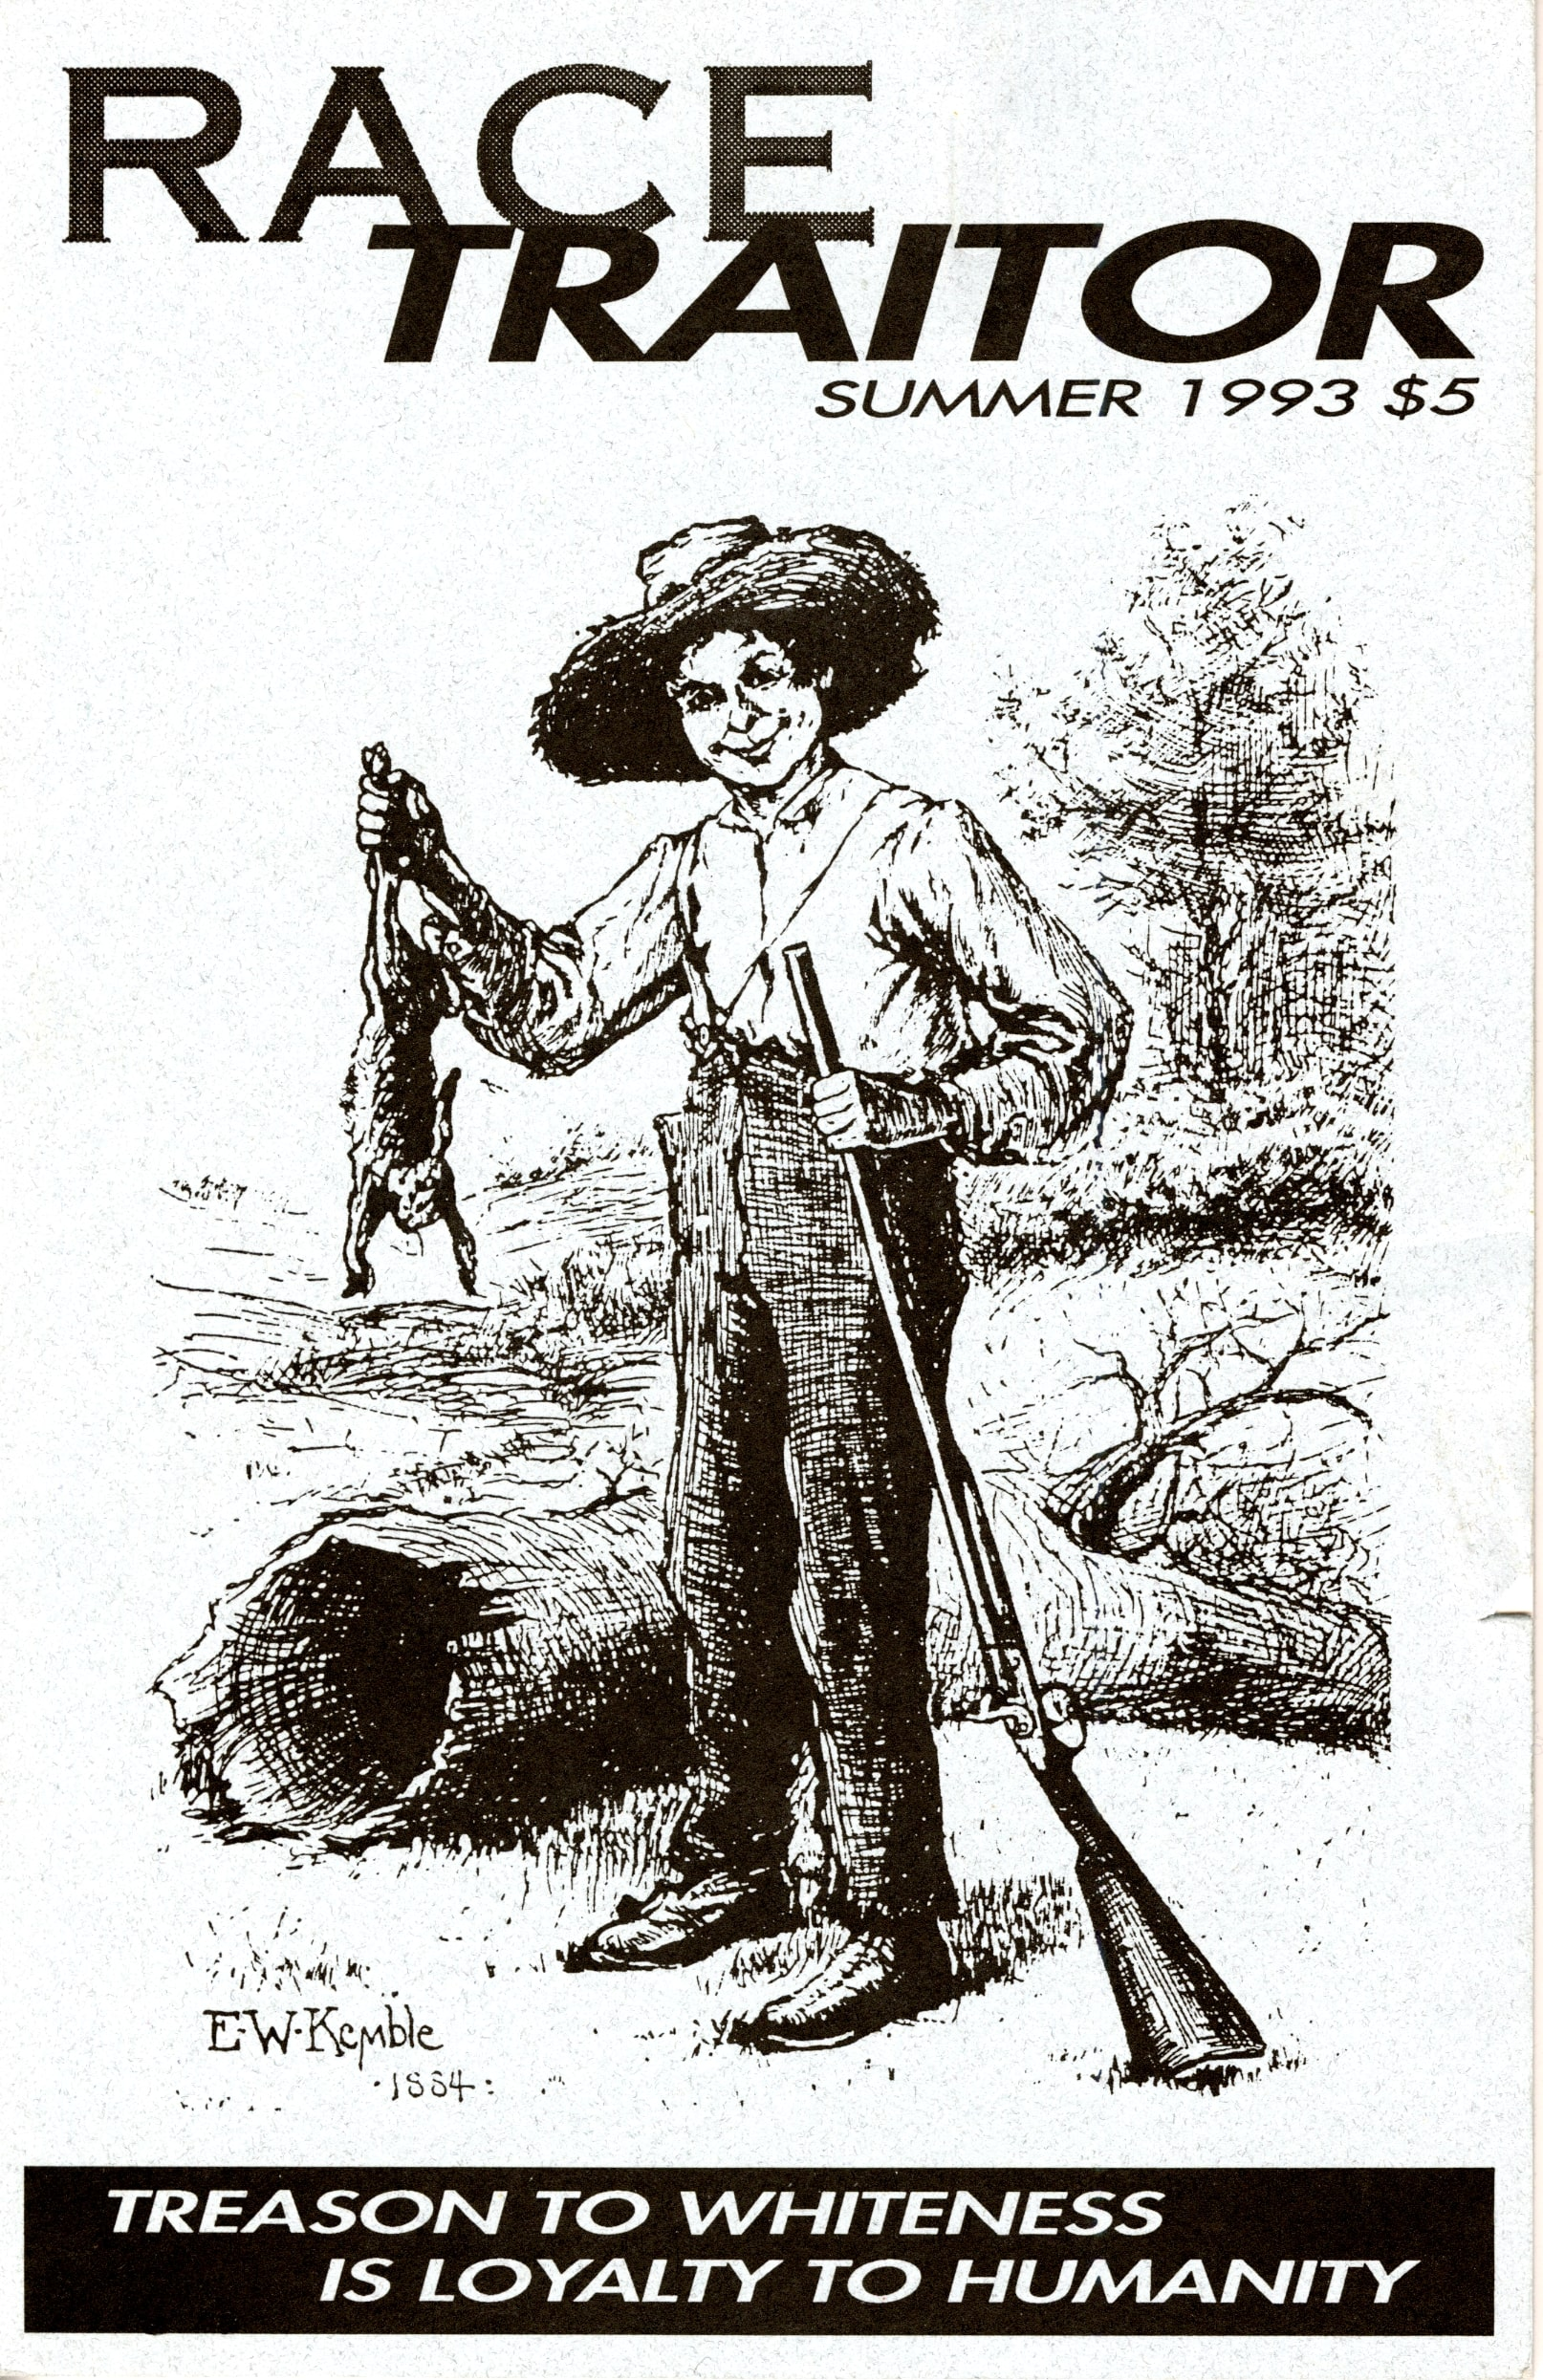 The cover of Race Traitor, featuring E. W. Kemble's 1884 illustration the frontispiece of the 1885 American 1st edition of The Adventures of Huckleberry Finn